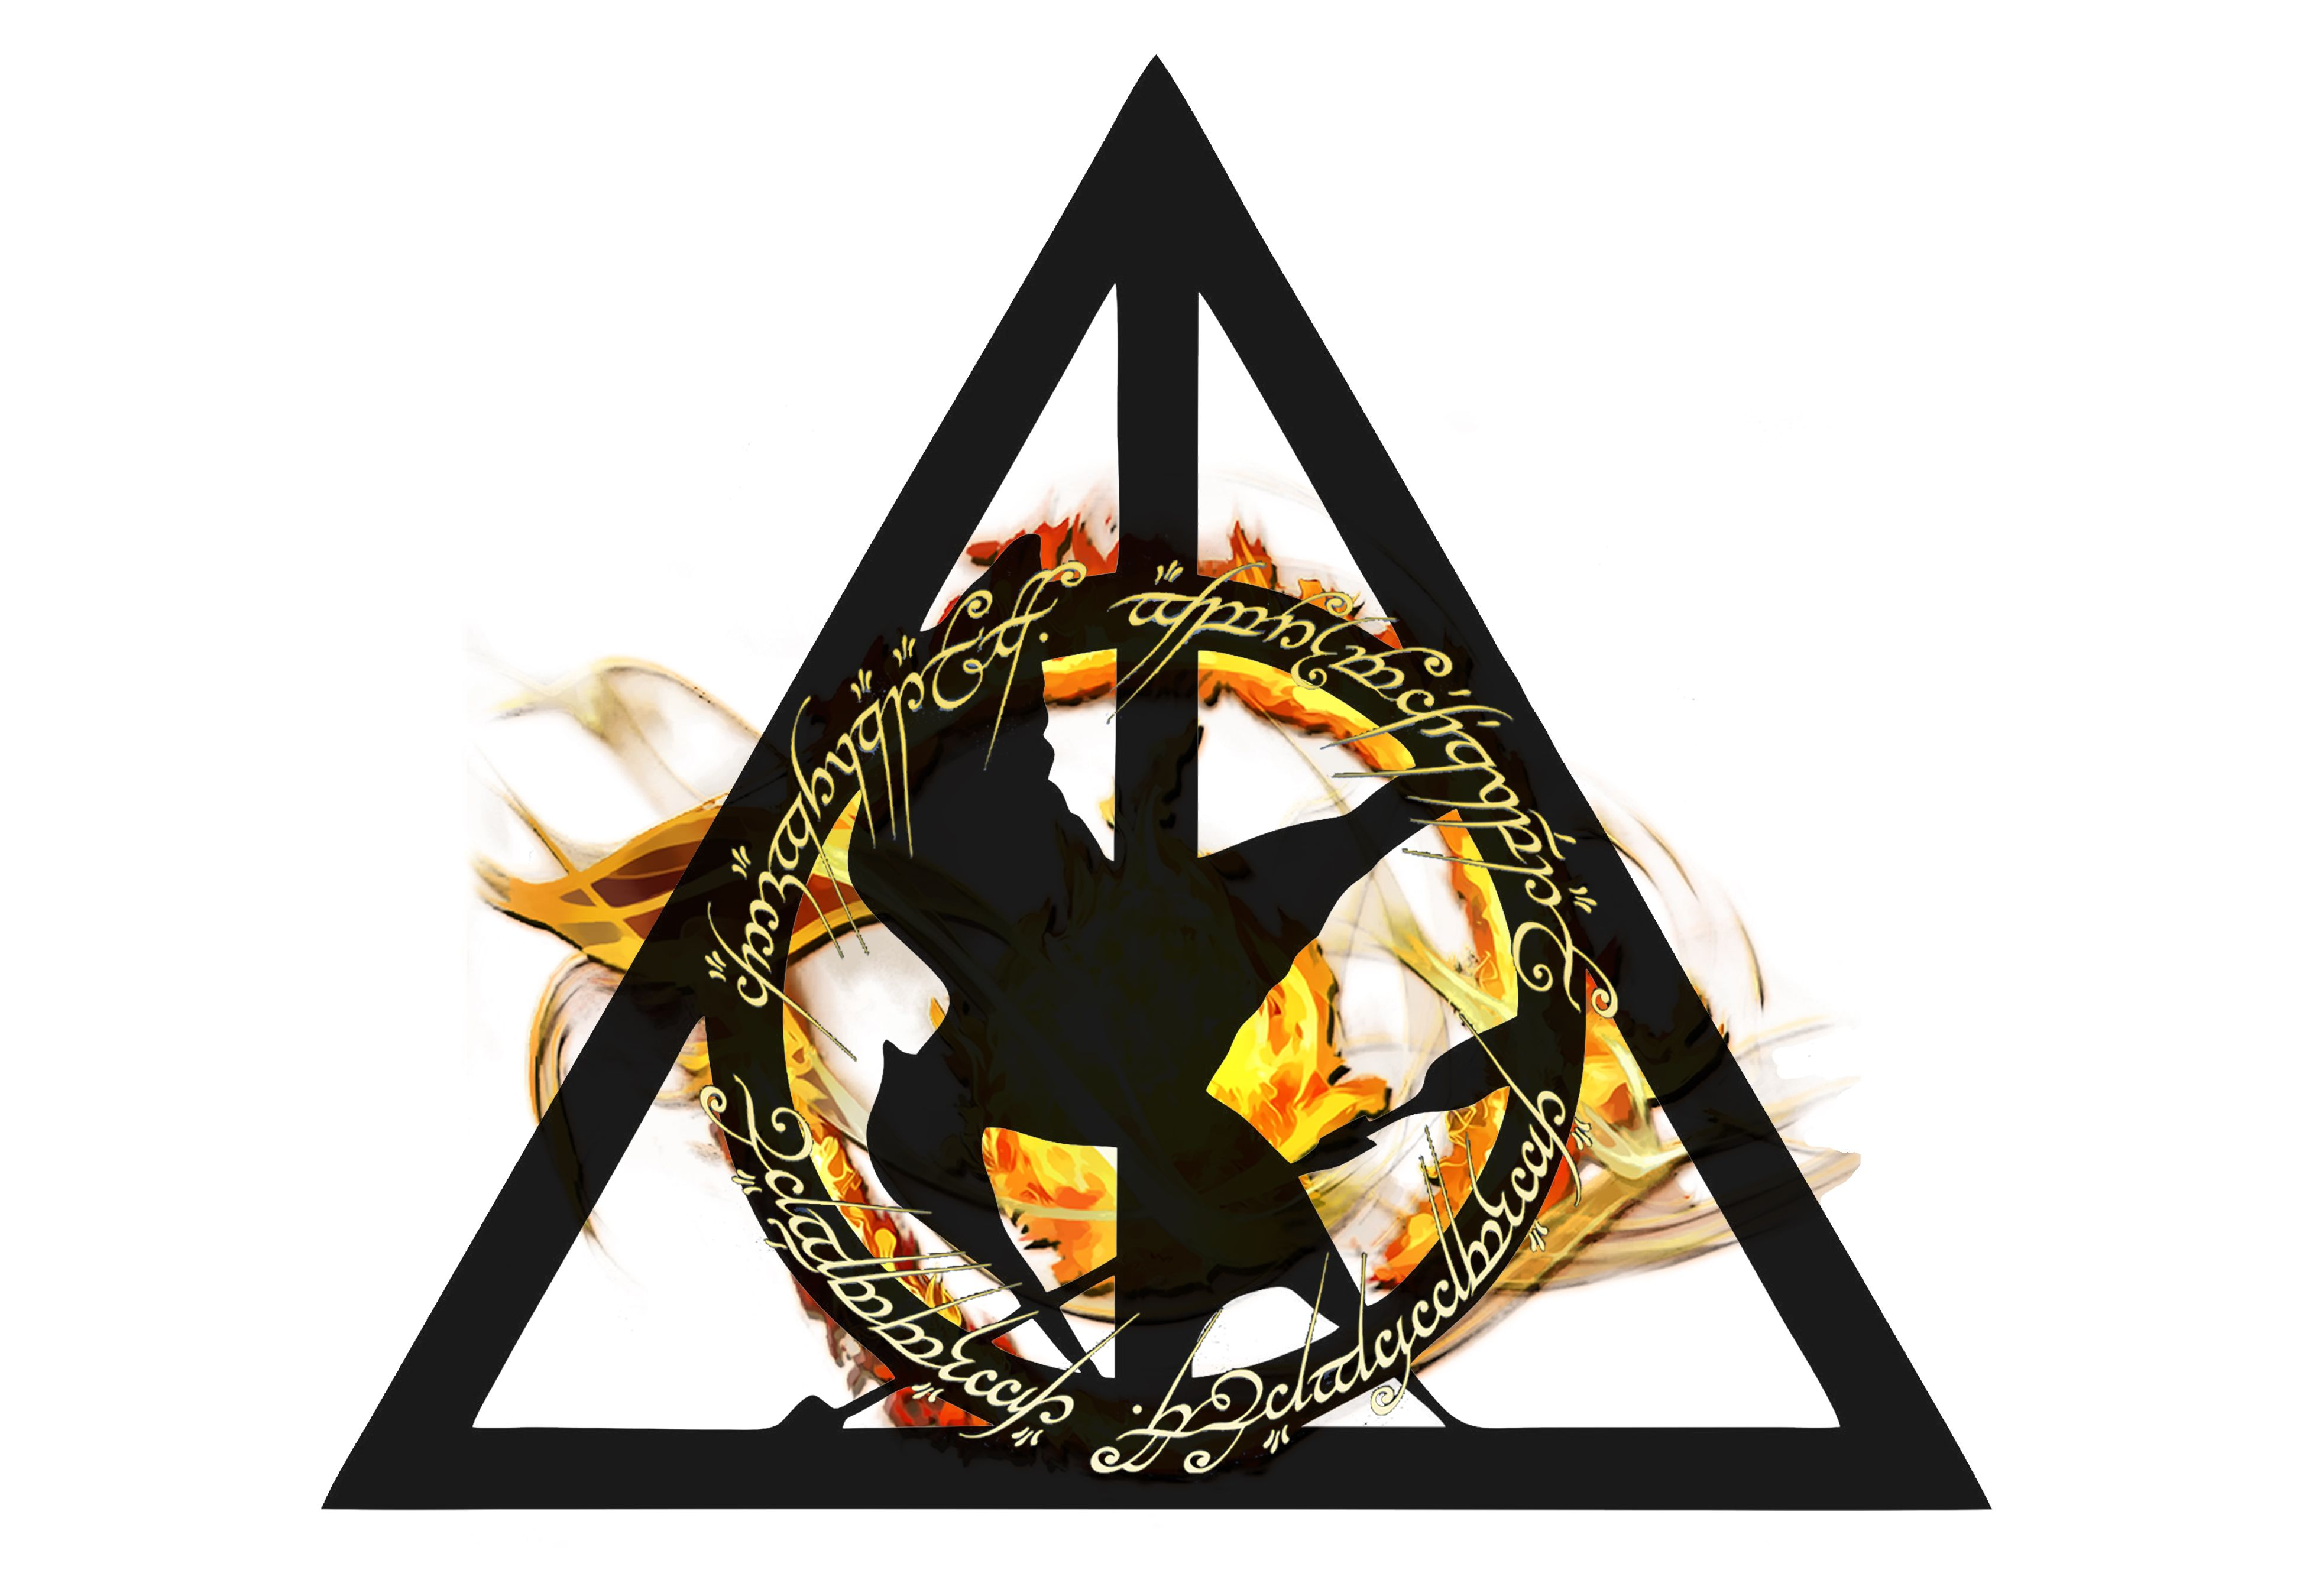 Harry Potterly Hallows Sign Lord Of The Rings